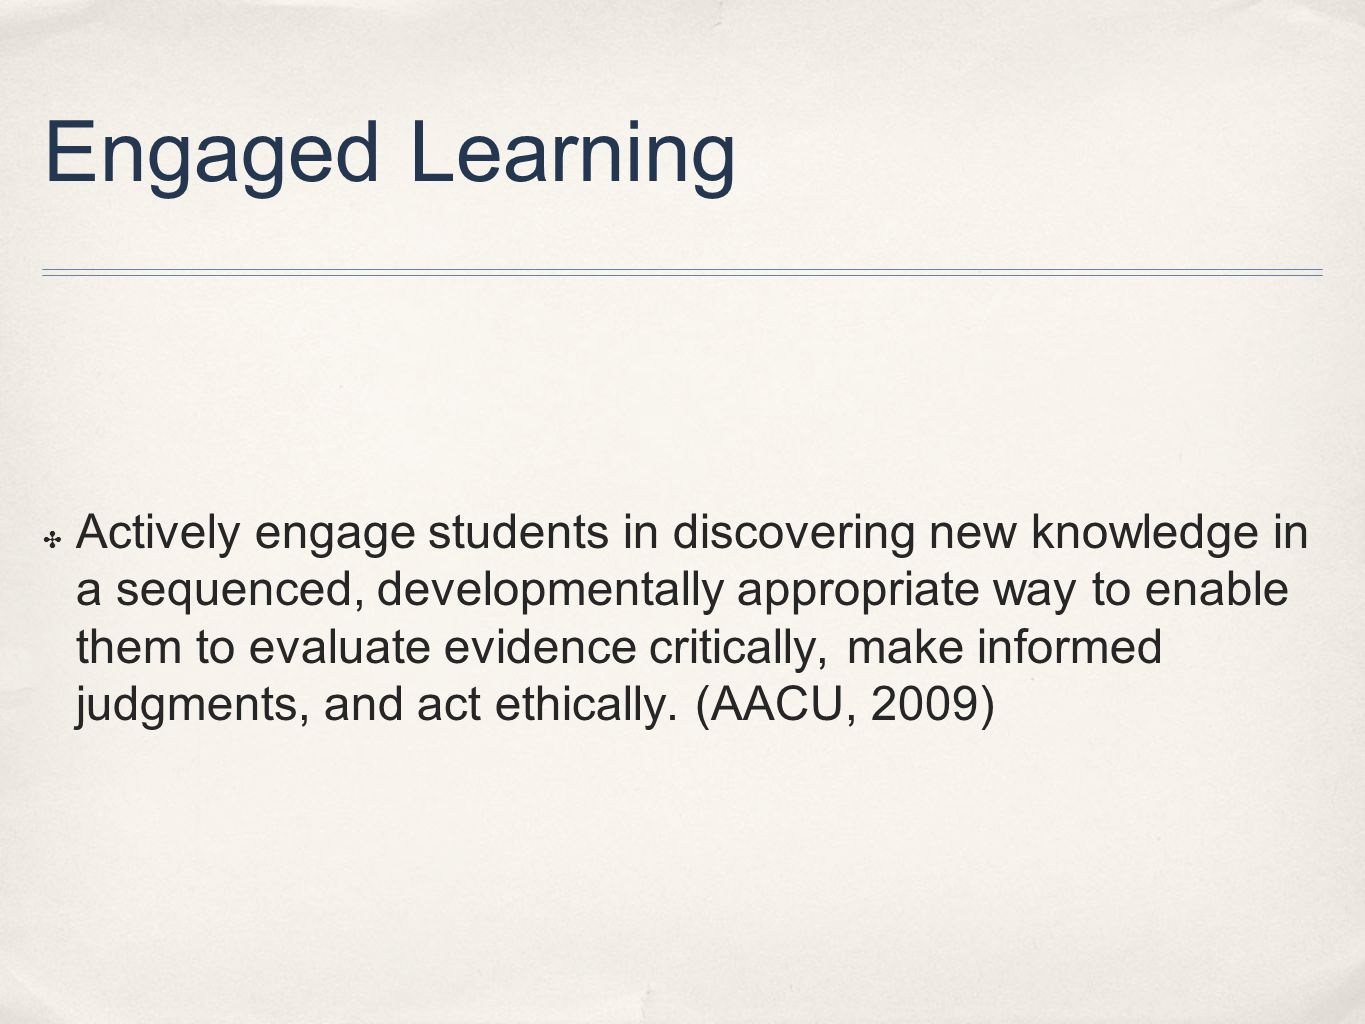 ✤ Learning styles of undergraduate students become similar to their role models (teachers). (Shein and Chiou, 2011)